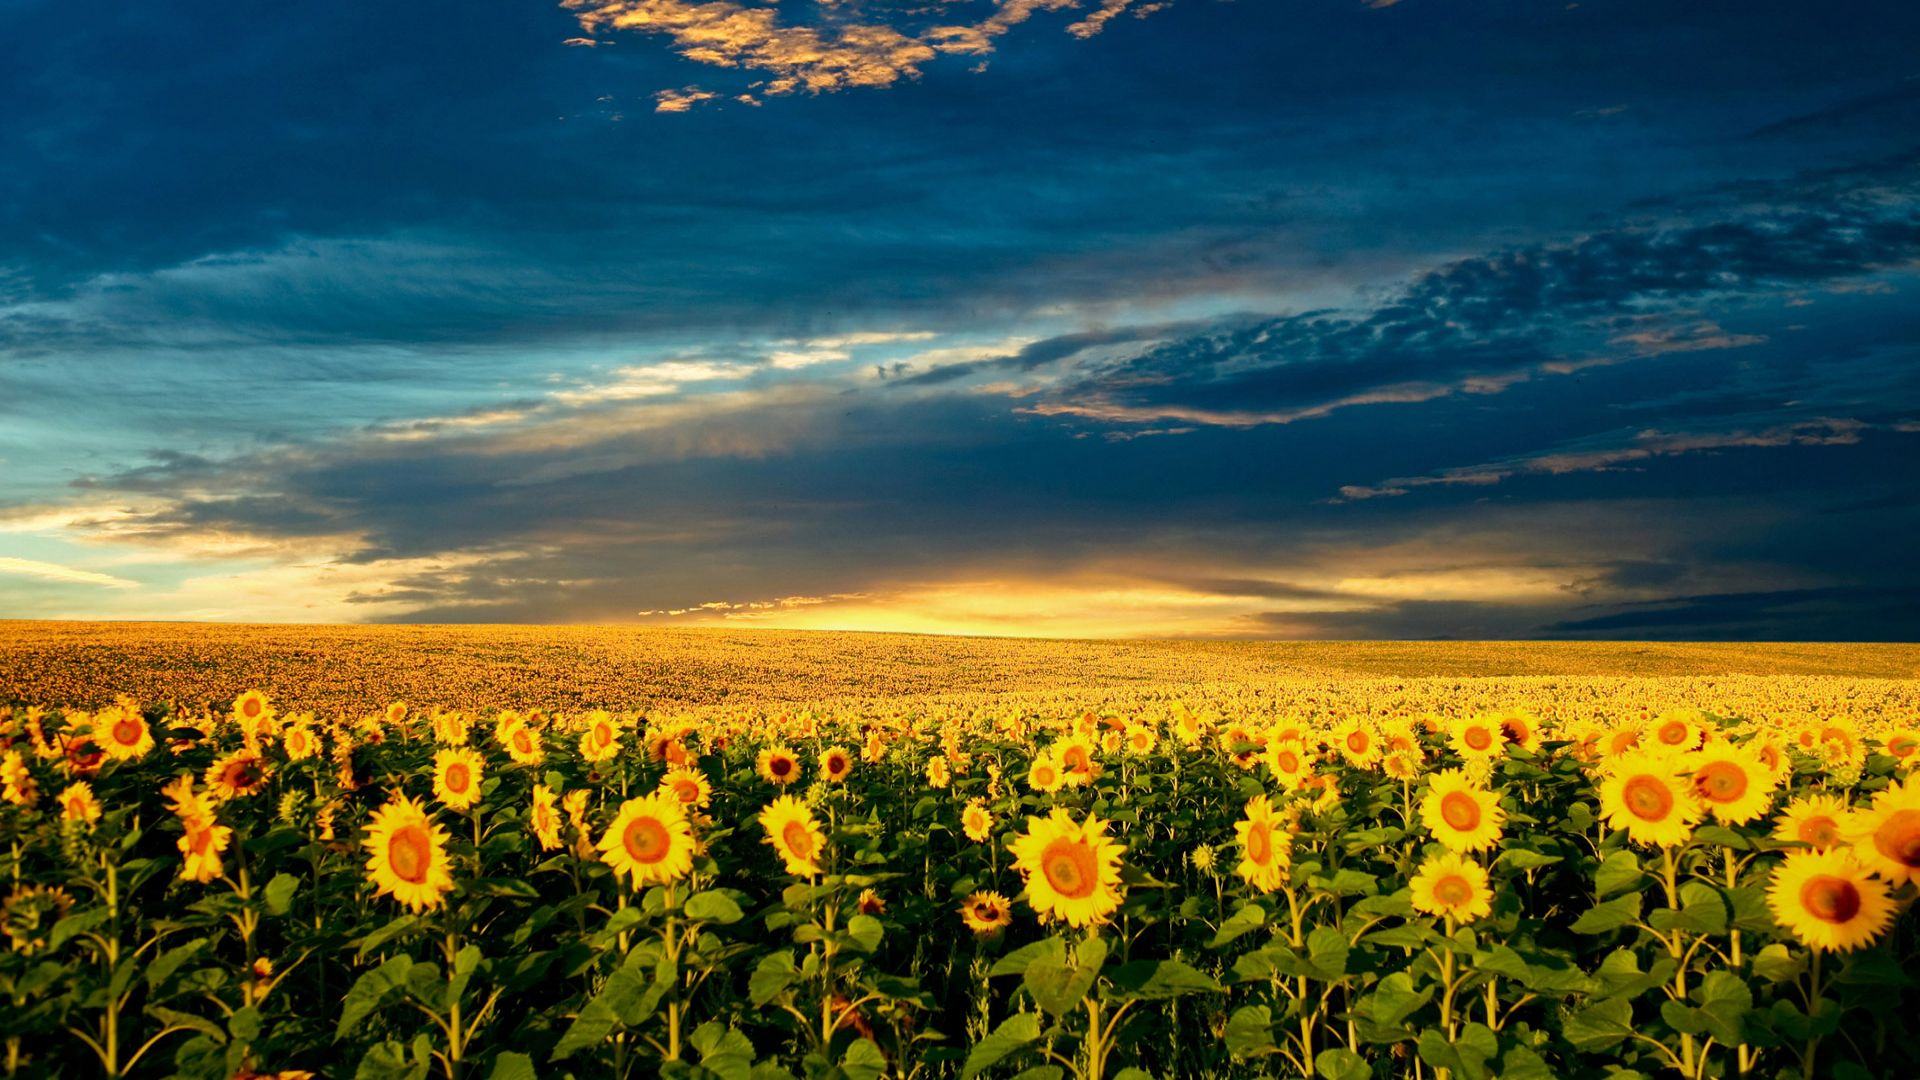 The former Soviet Union grows the most sunflowers.